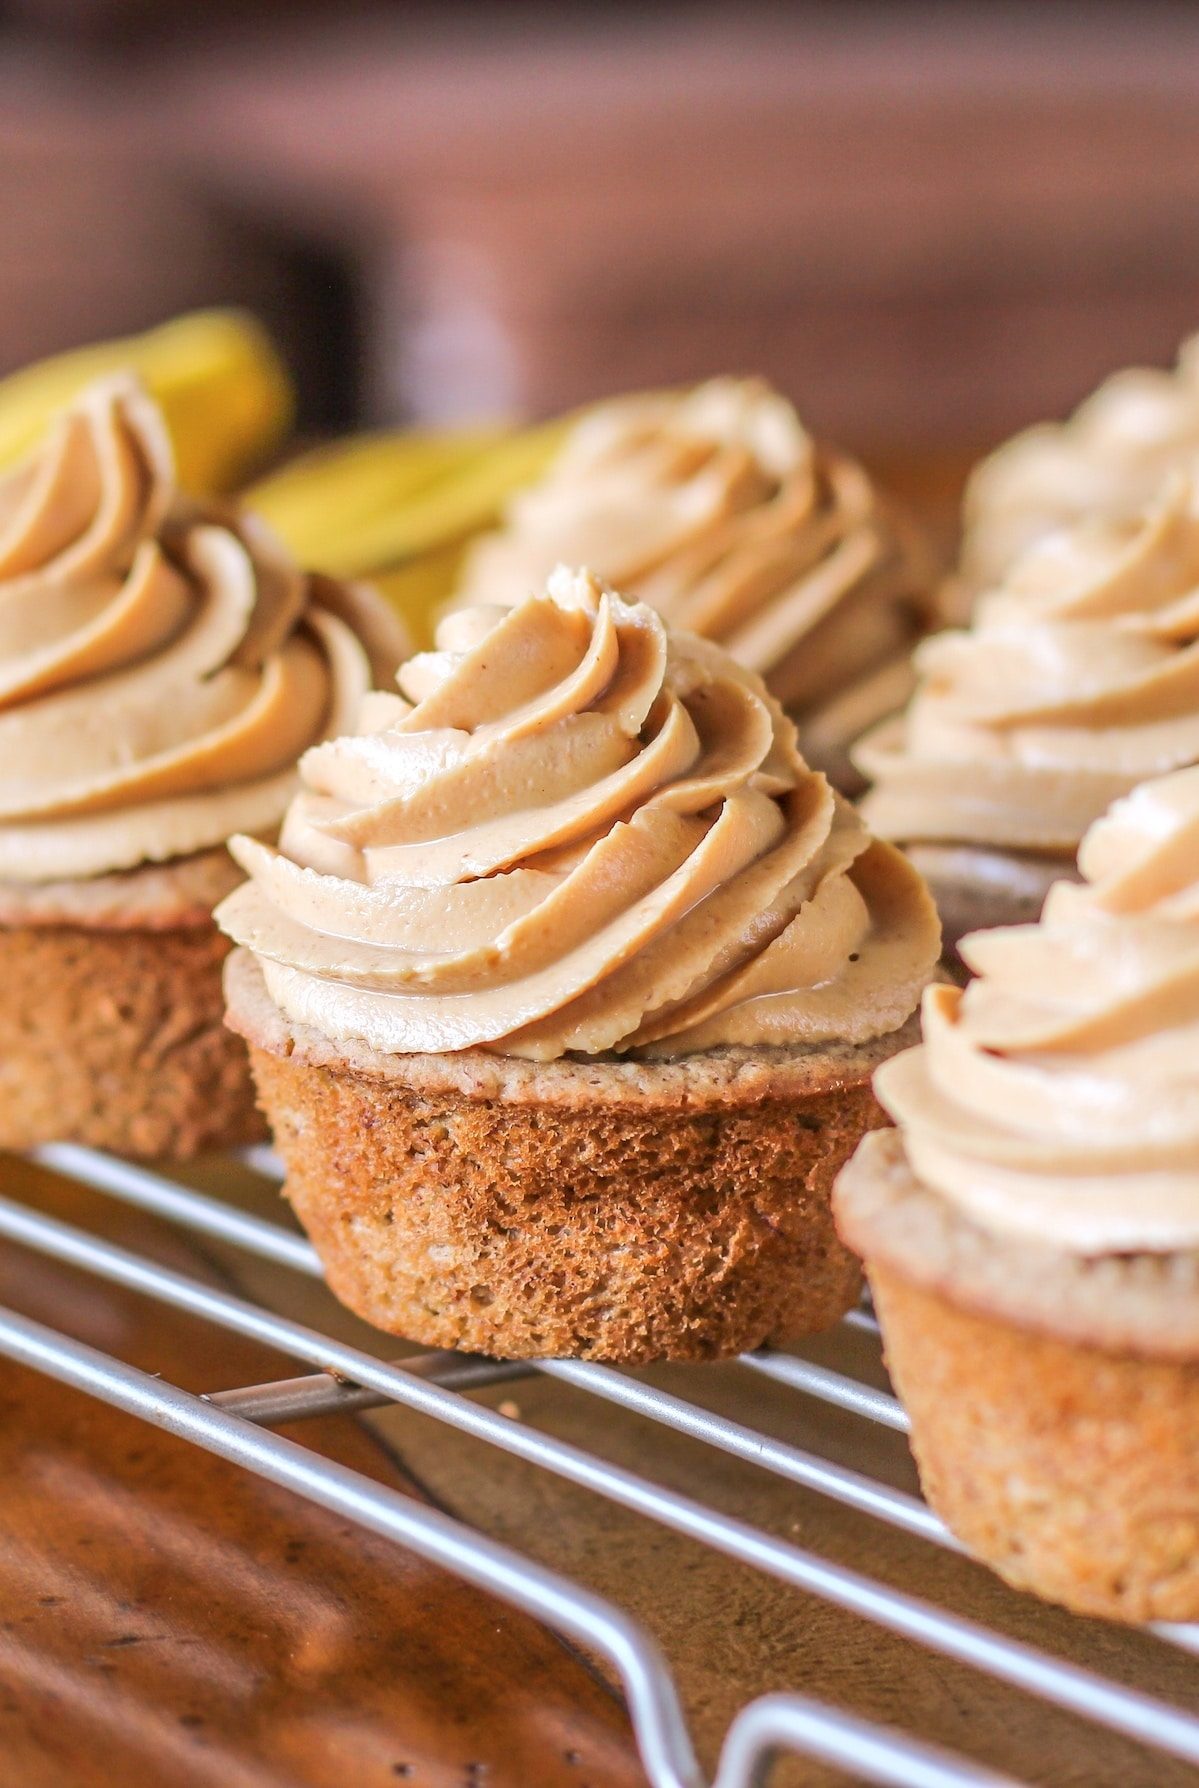 20 Healthy Desserts You Can Eat For Breakfast: 14) Healthy Banana Cupcakes with Peanut Butter Frosting recipe (refined sugar free, high protein, high fiber, gluten free, dairy free, vegan) - Healthy Dessert Recipes at Desserts with Benefits